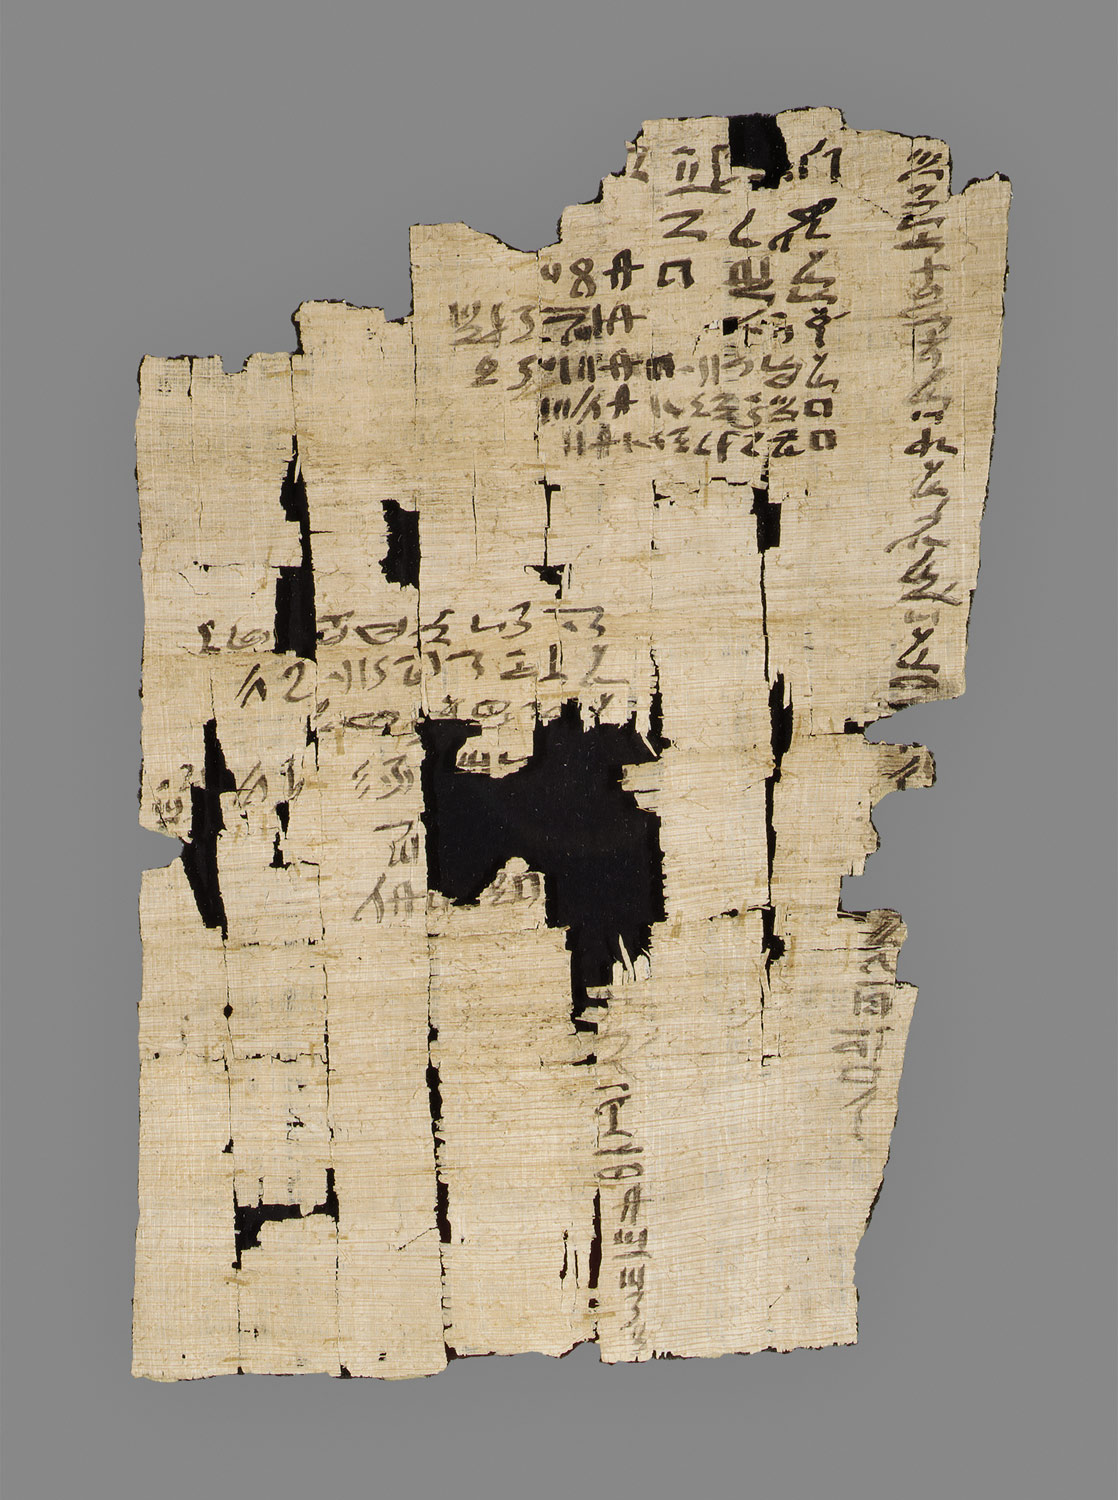 Heqanakht papyrus containing reference to the month of Shef-bedet (2)